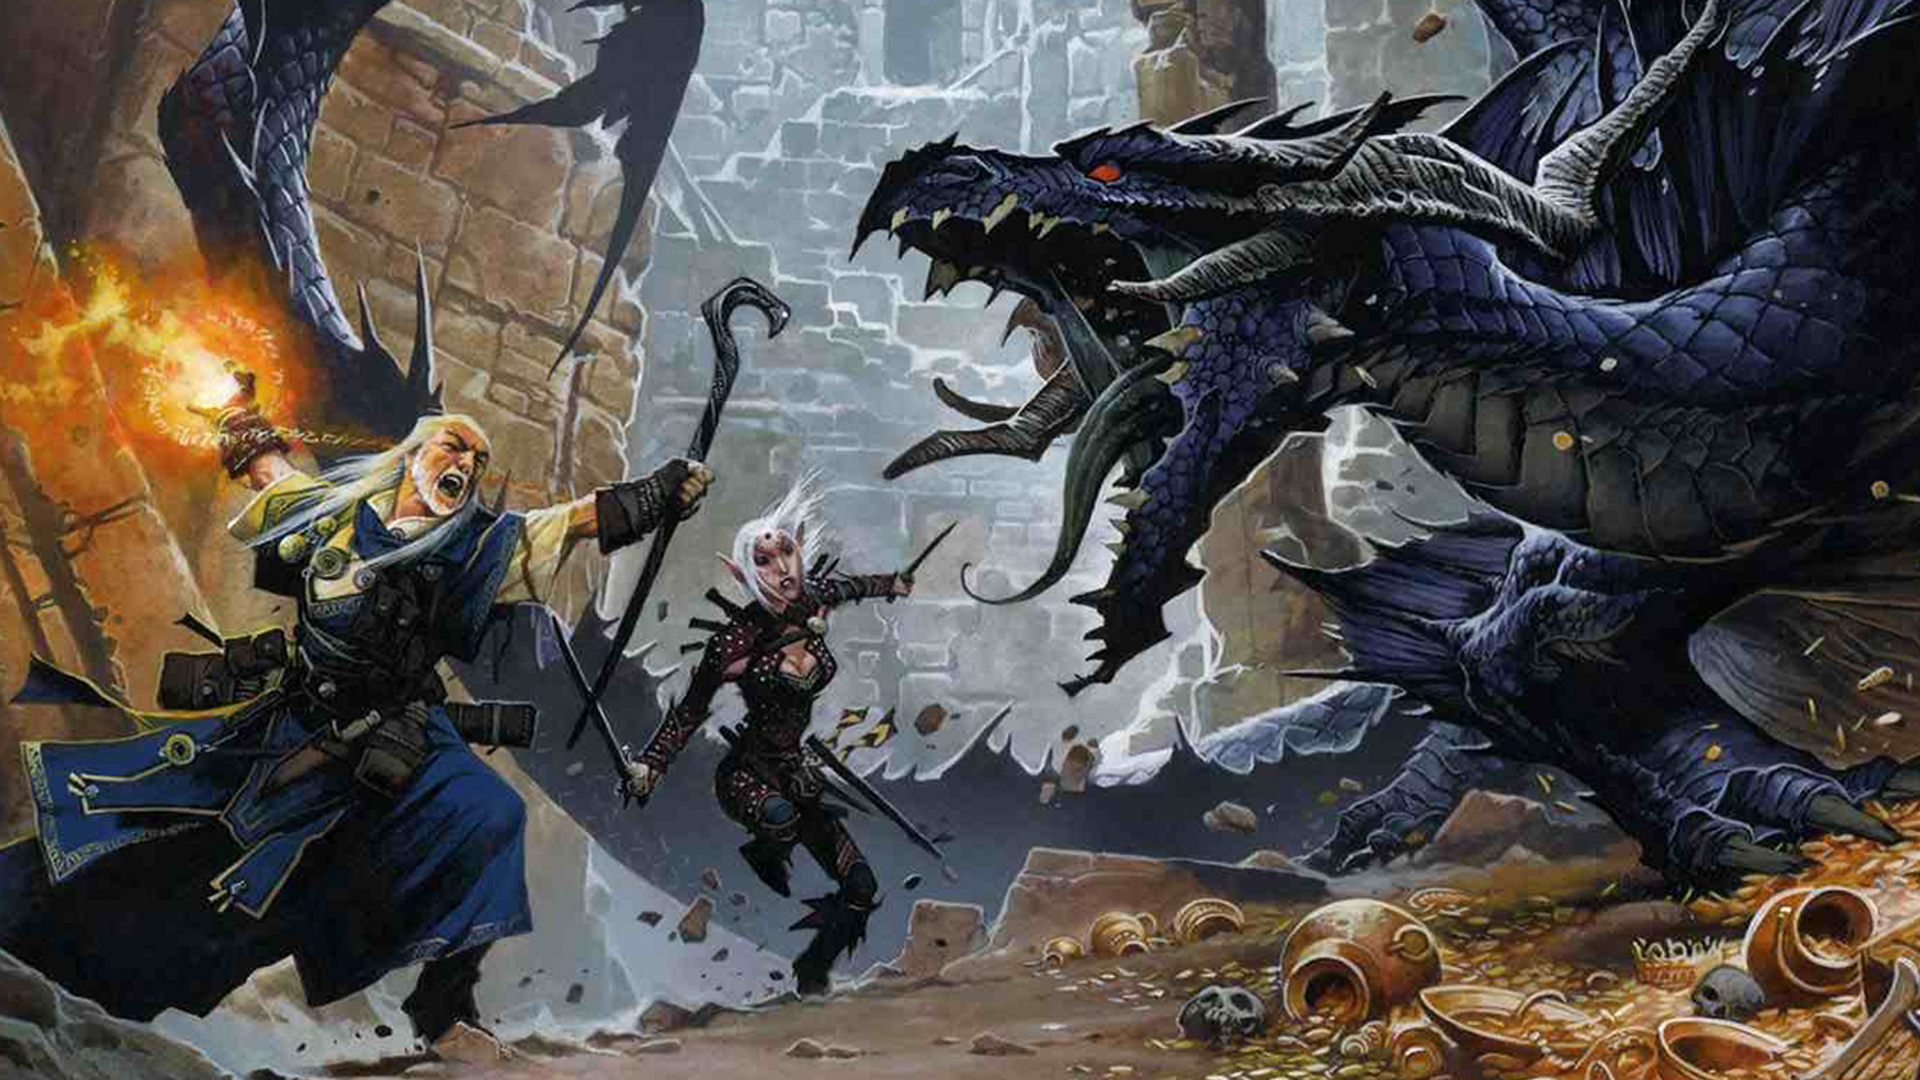 Get Started With Pathfinder Rpg For 78p In The Latest Humble